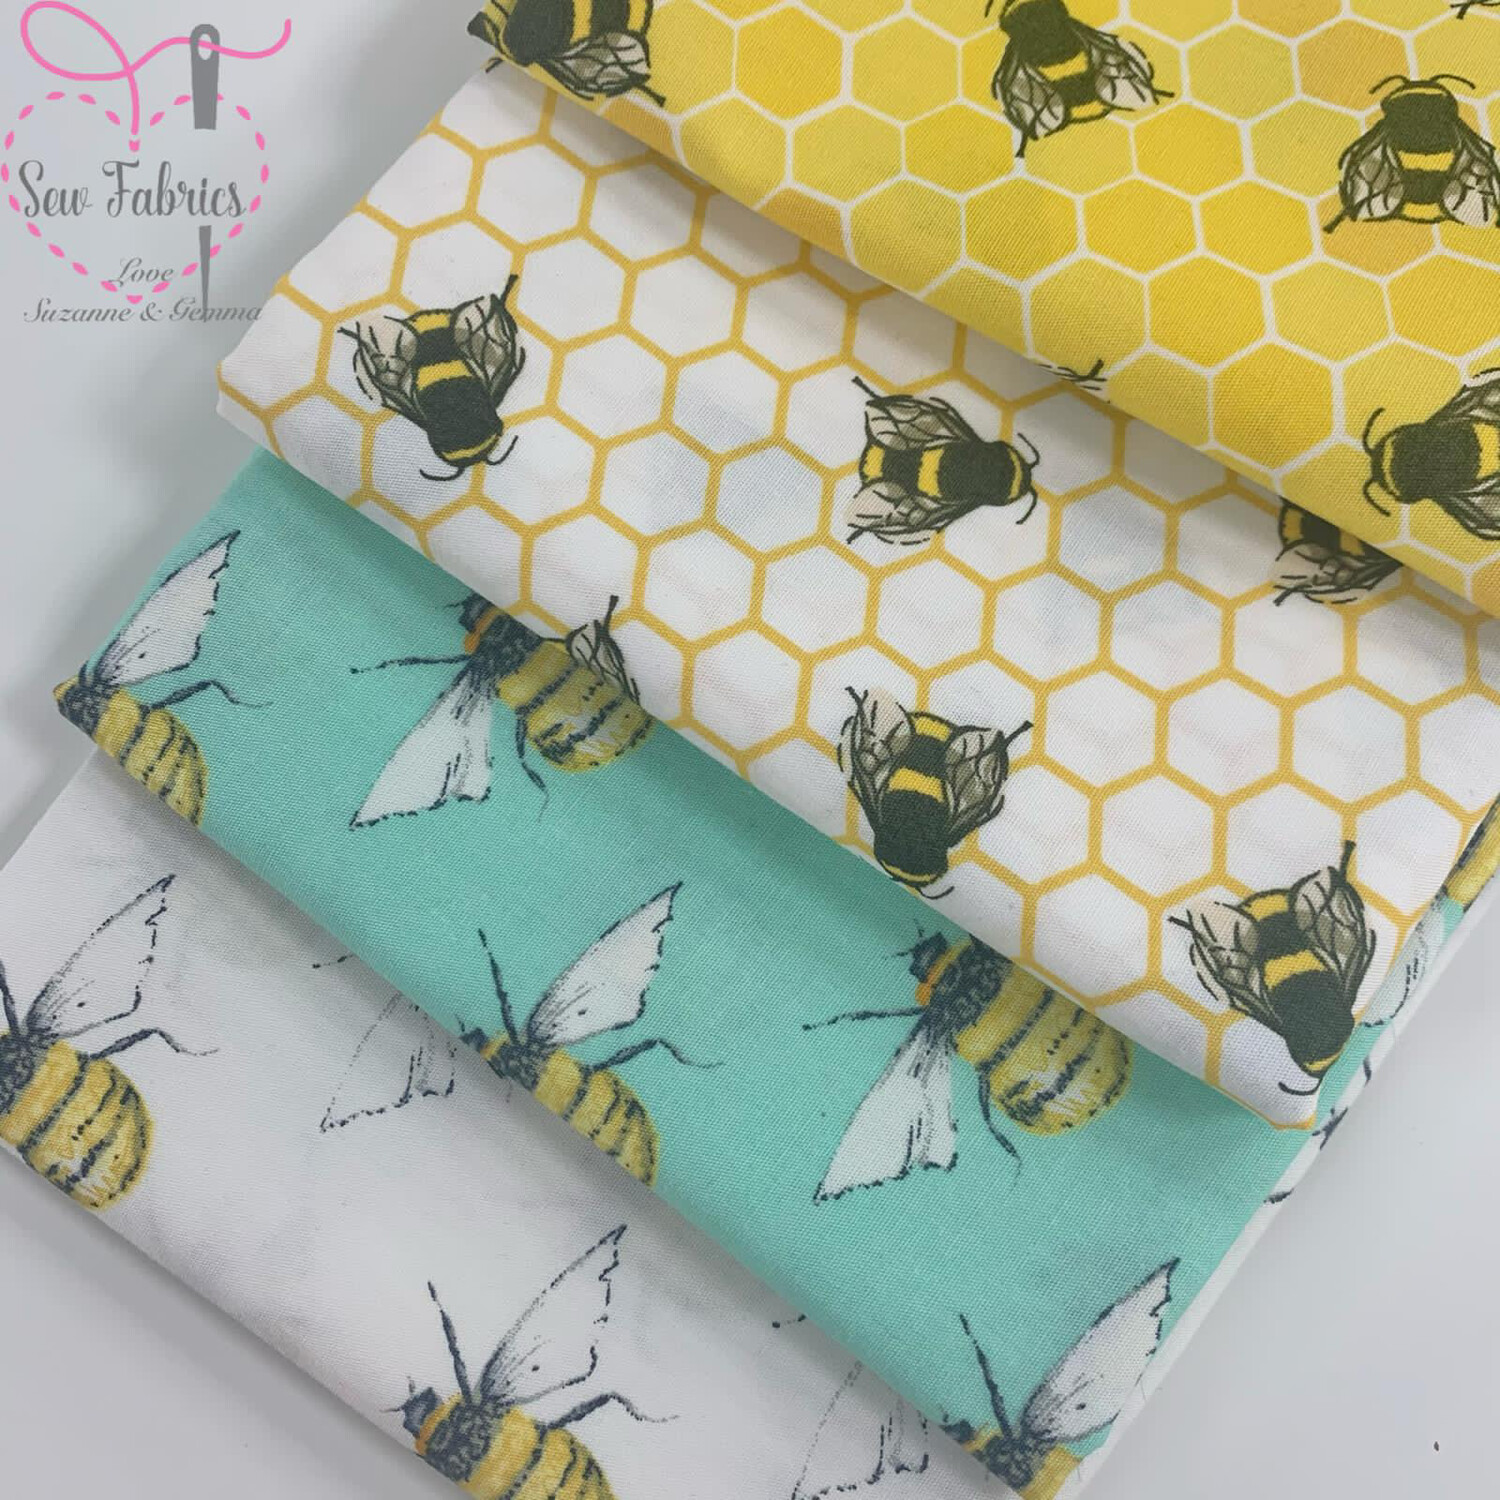 100% Cotton Poplin Fabric Bees Design 4 x Fat Quarter Bundle, Spring Summer Quilting, Crafting, Novelty Bee